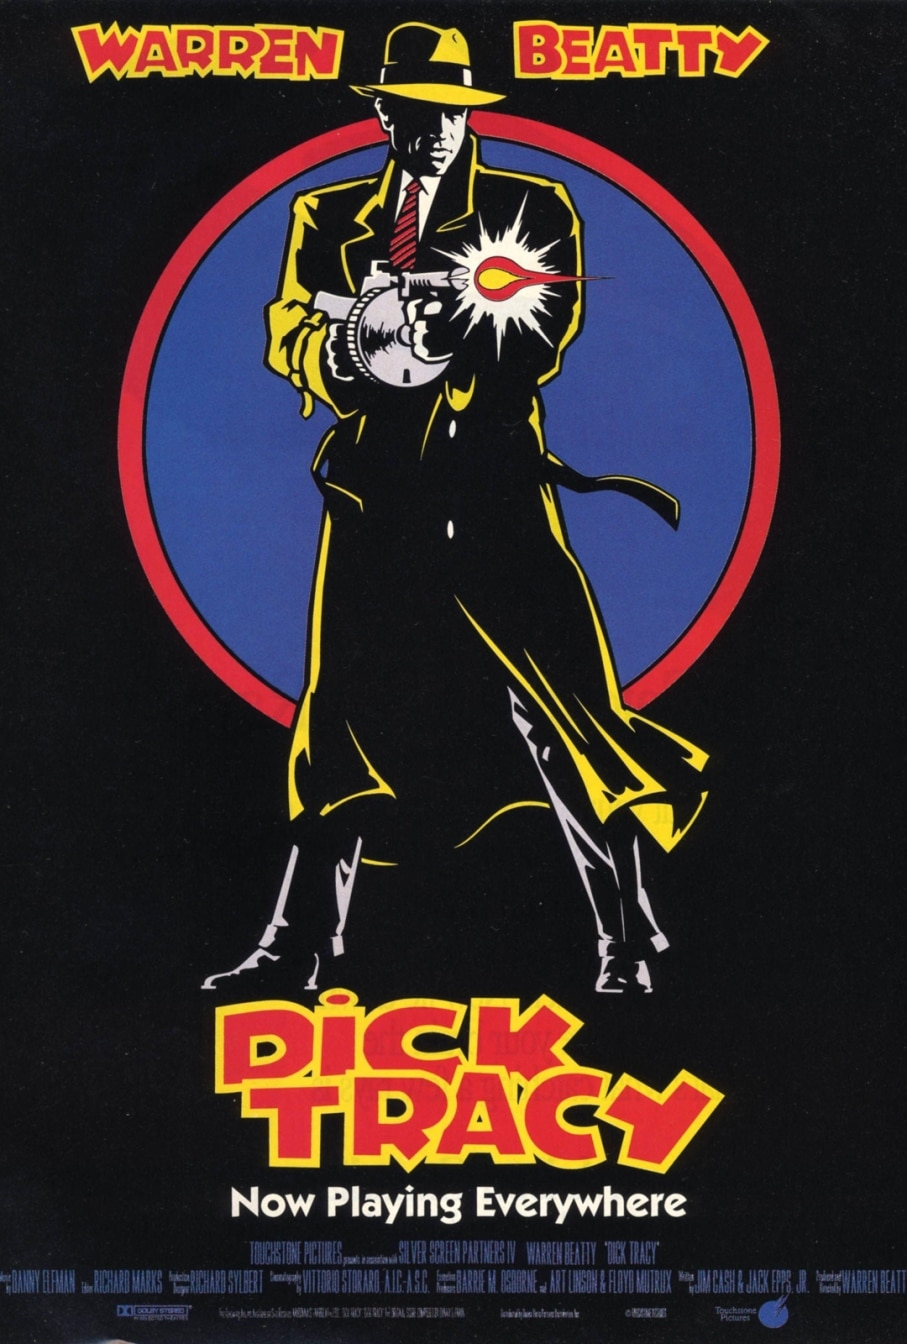 Calling DICK TRACY: Celebrating 30 Years of Warren Beatty's Forgotten (Secret Giallo) Masterpiece